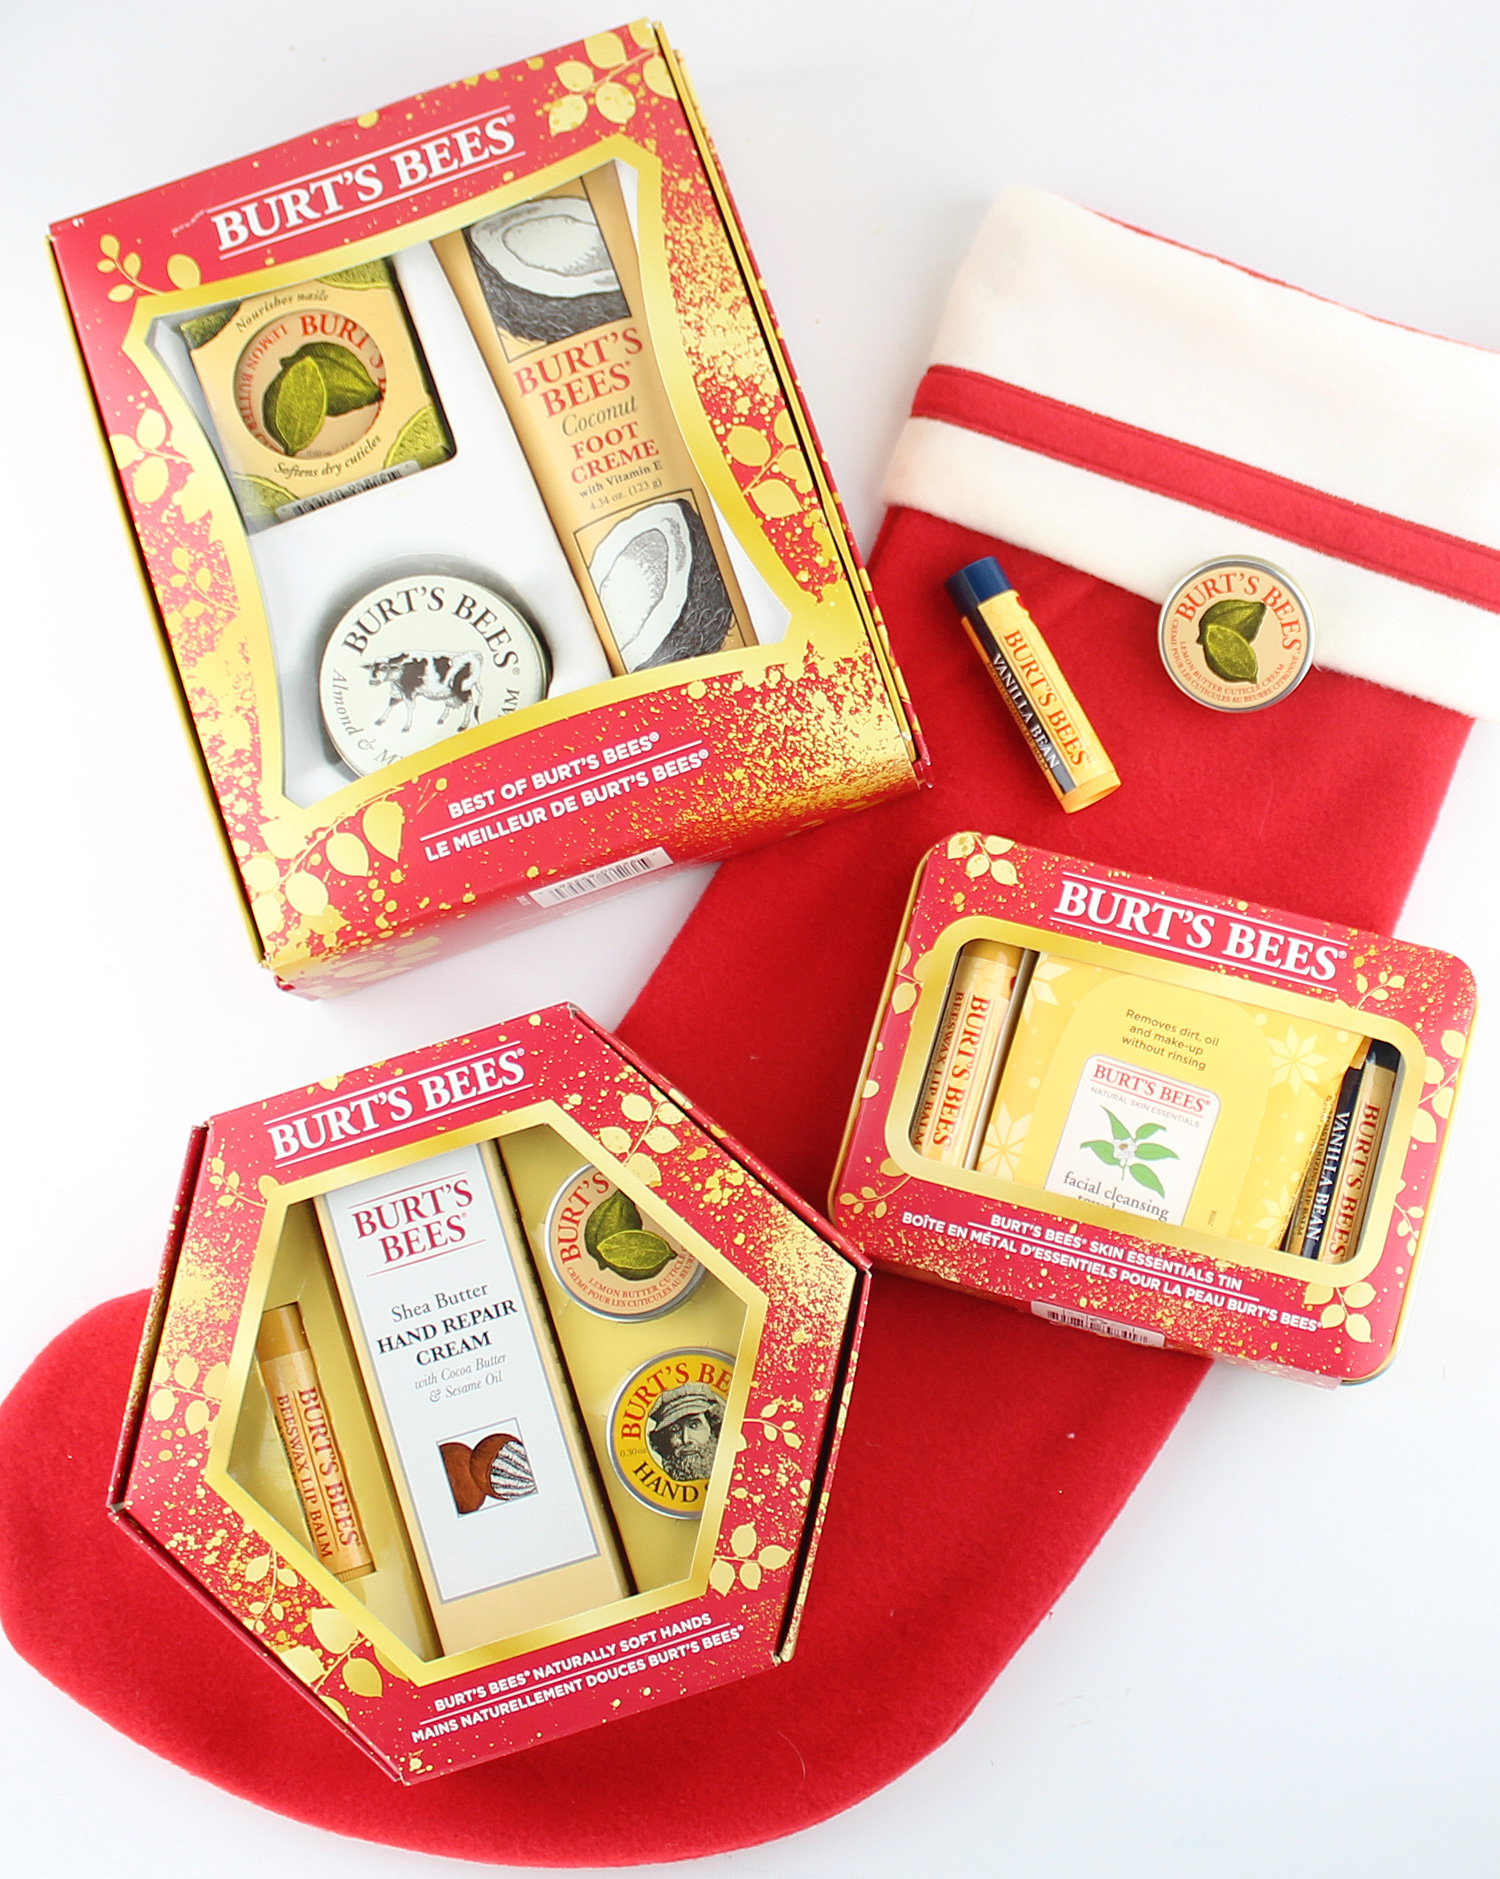 Easy Gift Ideas from Target and Burt's Bees